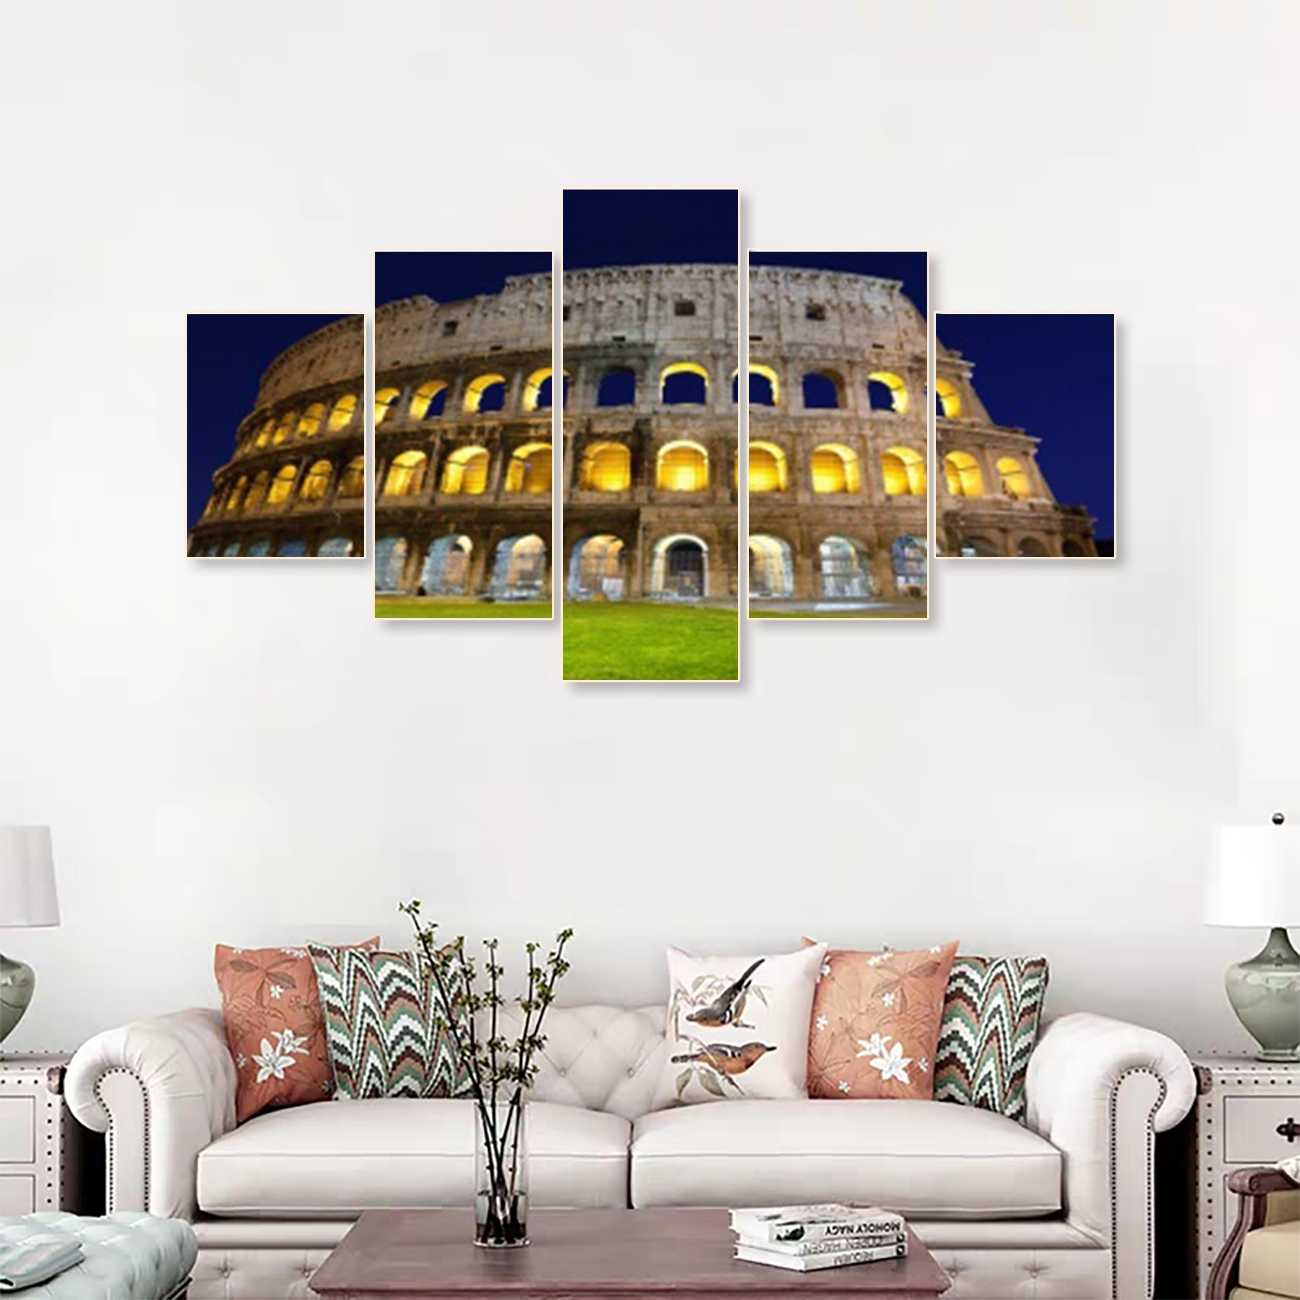 Laeacco Canvas Calligraphy Painting 5 Panel Wall Art Vintage Roman Famous Building Poster and Print Home Living Room Decoration